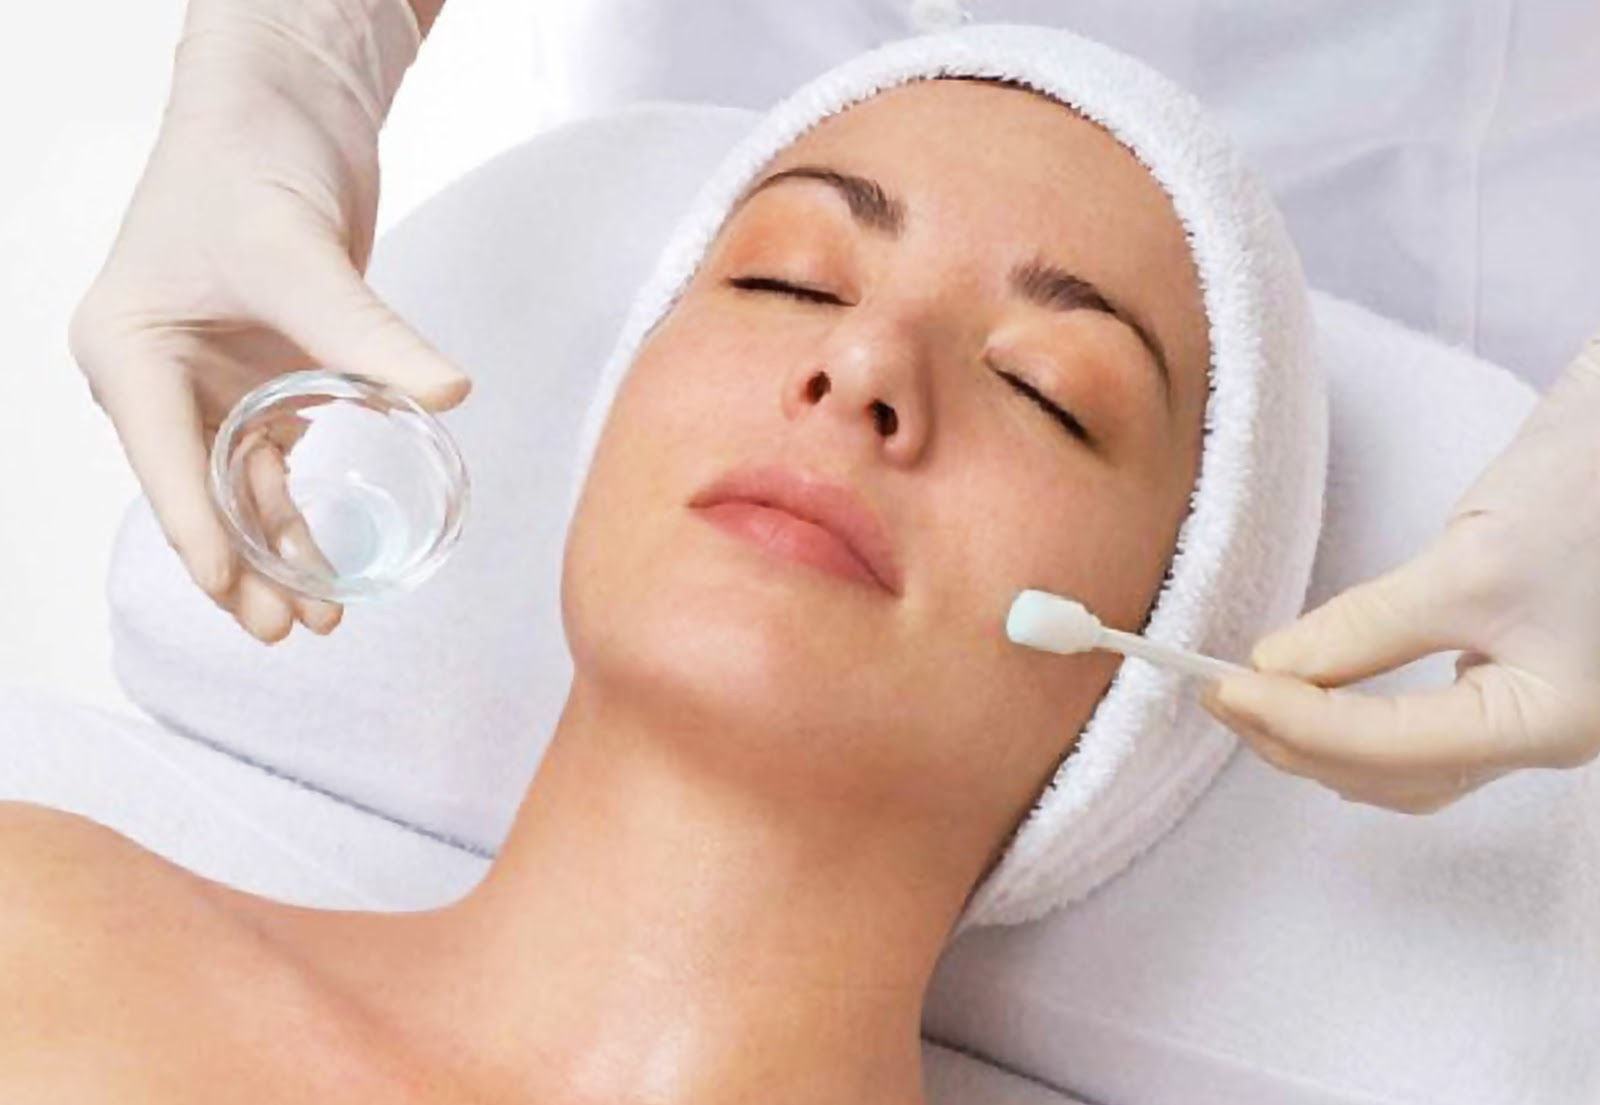 Non-Surgical Skin Tightening In Global Market Is Set for a Rapid Growth and Is Expected to Reach US$ 500 Mn by 2024